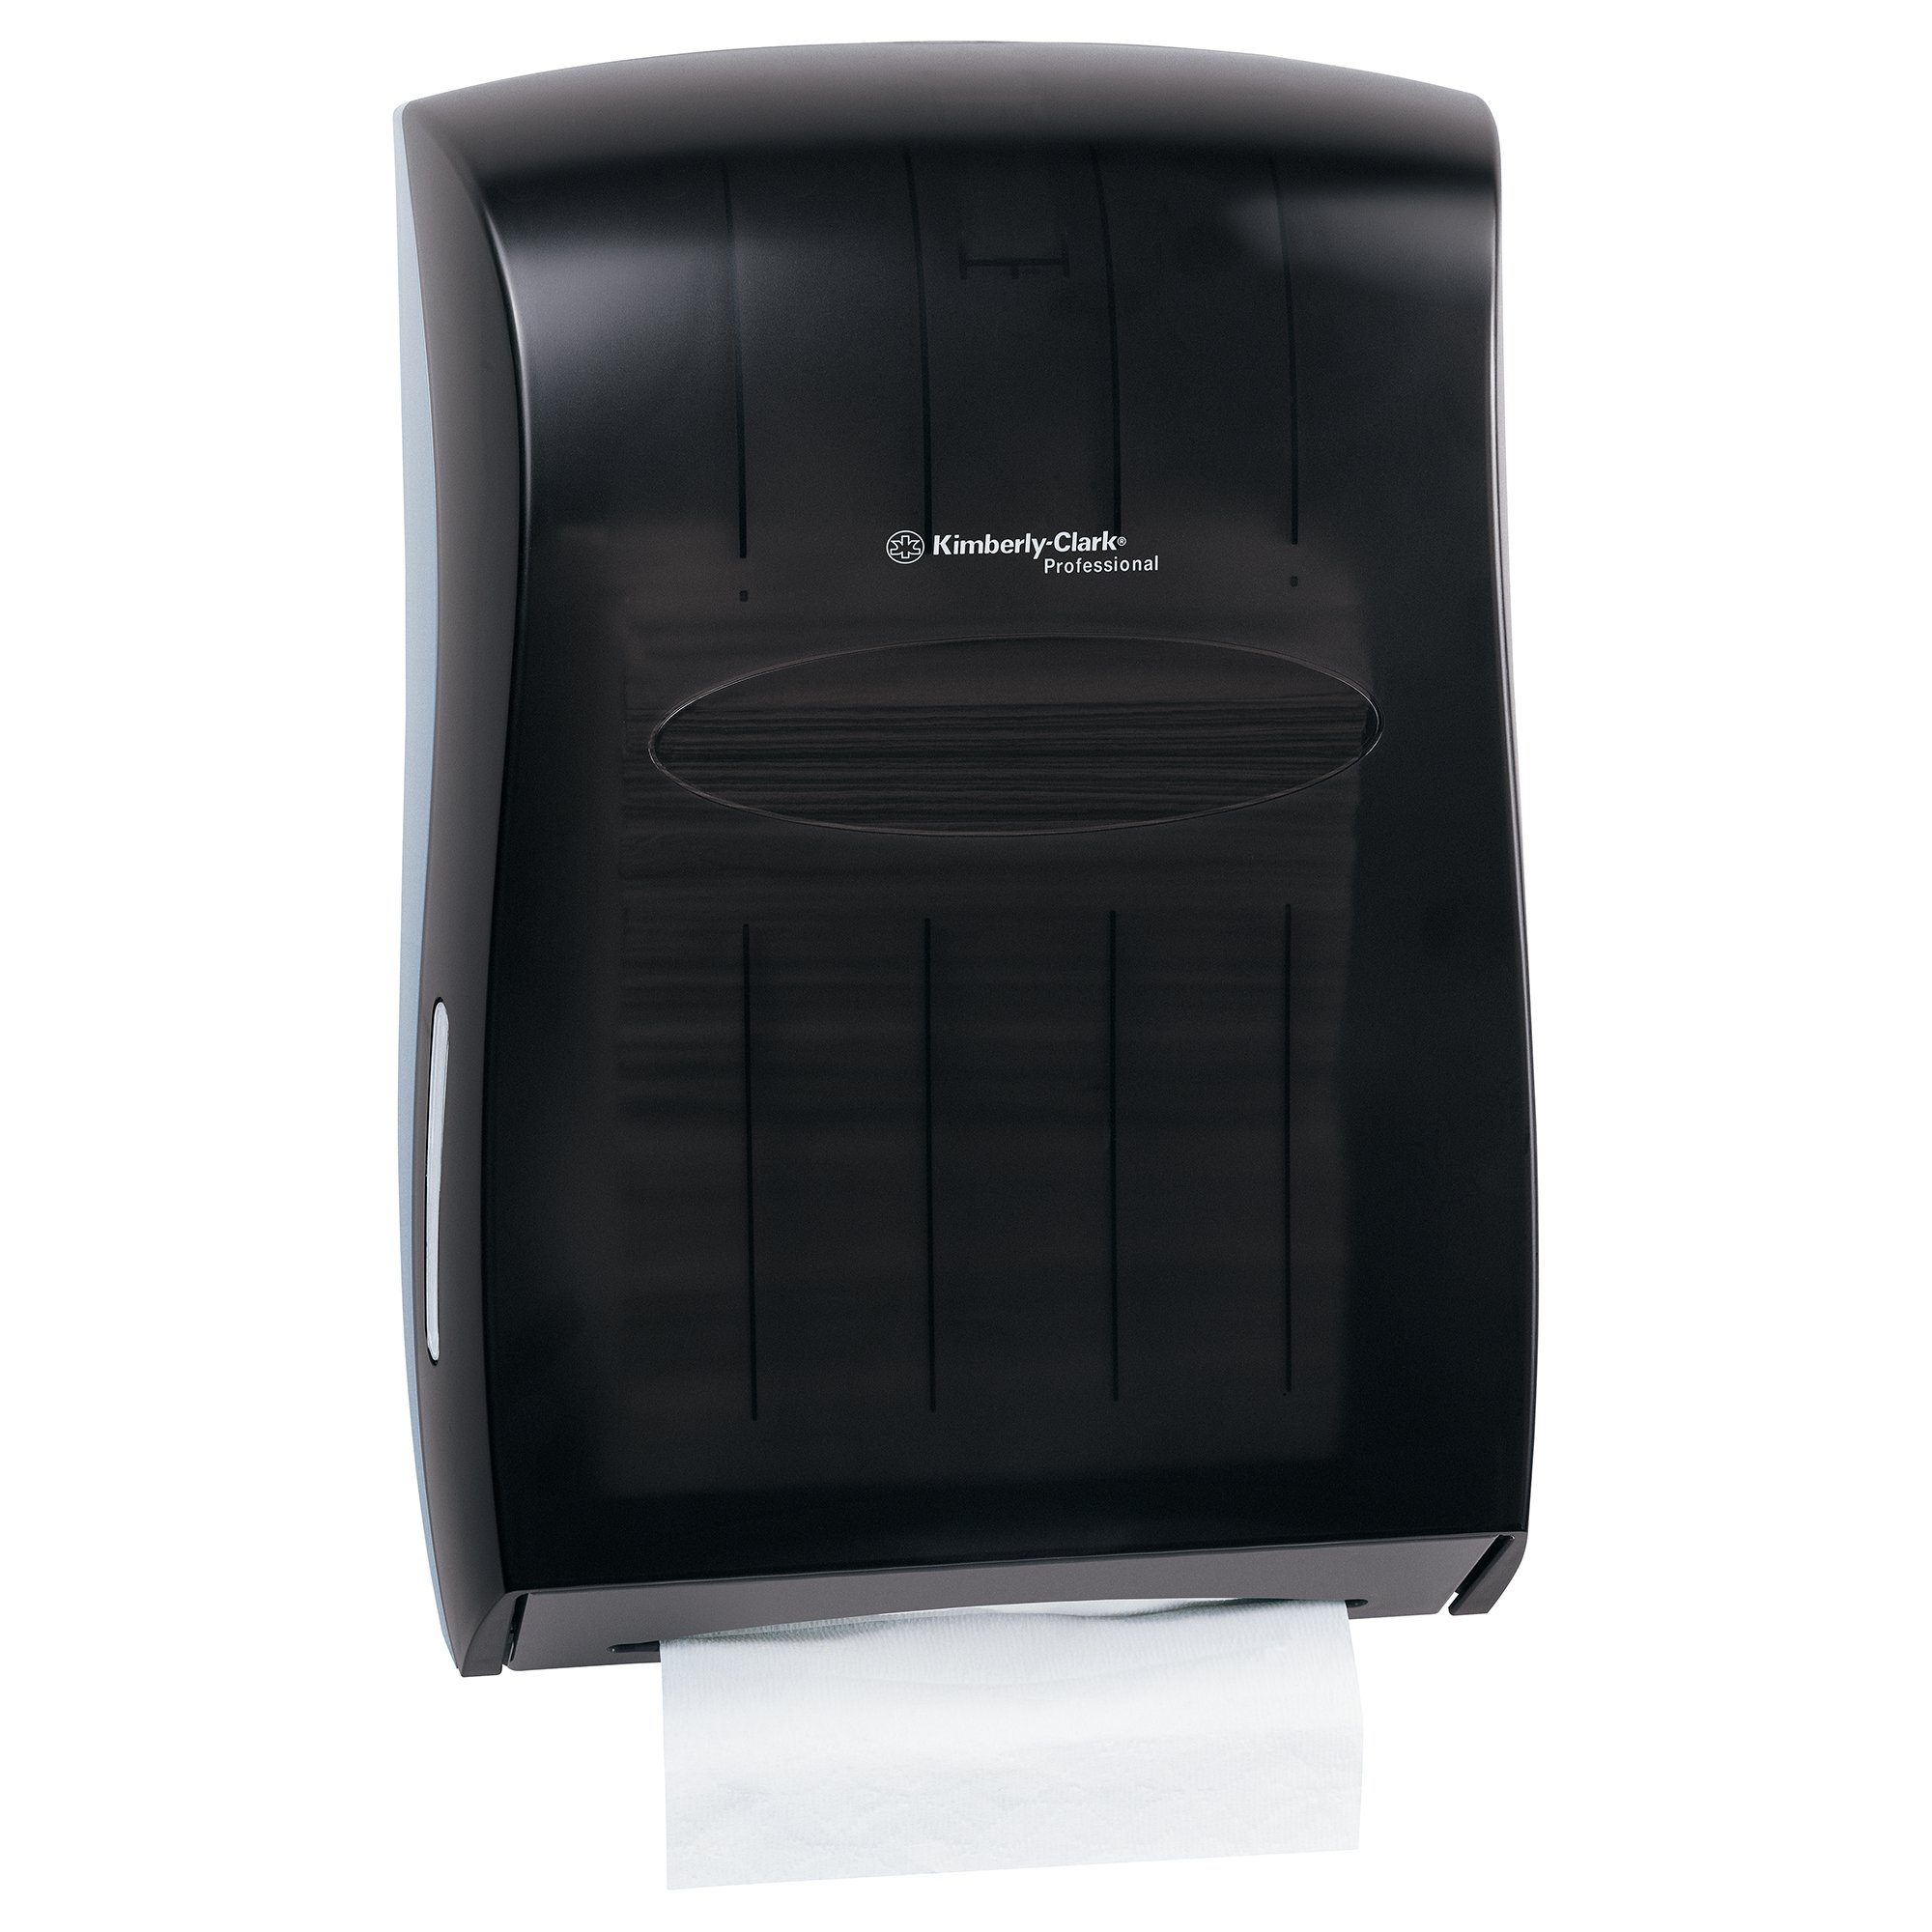 "Kimberly Clark Professional Universal Folded Paper Towel Dispenser (09905), for Kleenex and Scott Brand Multifold and C-fold, 13.3"" x, 5.9"" x 18.9"", Smoke (Black)"